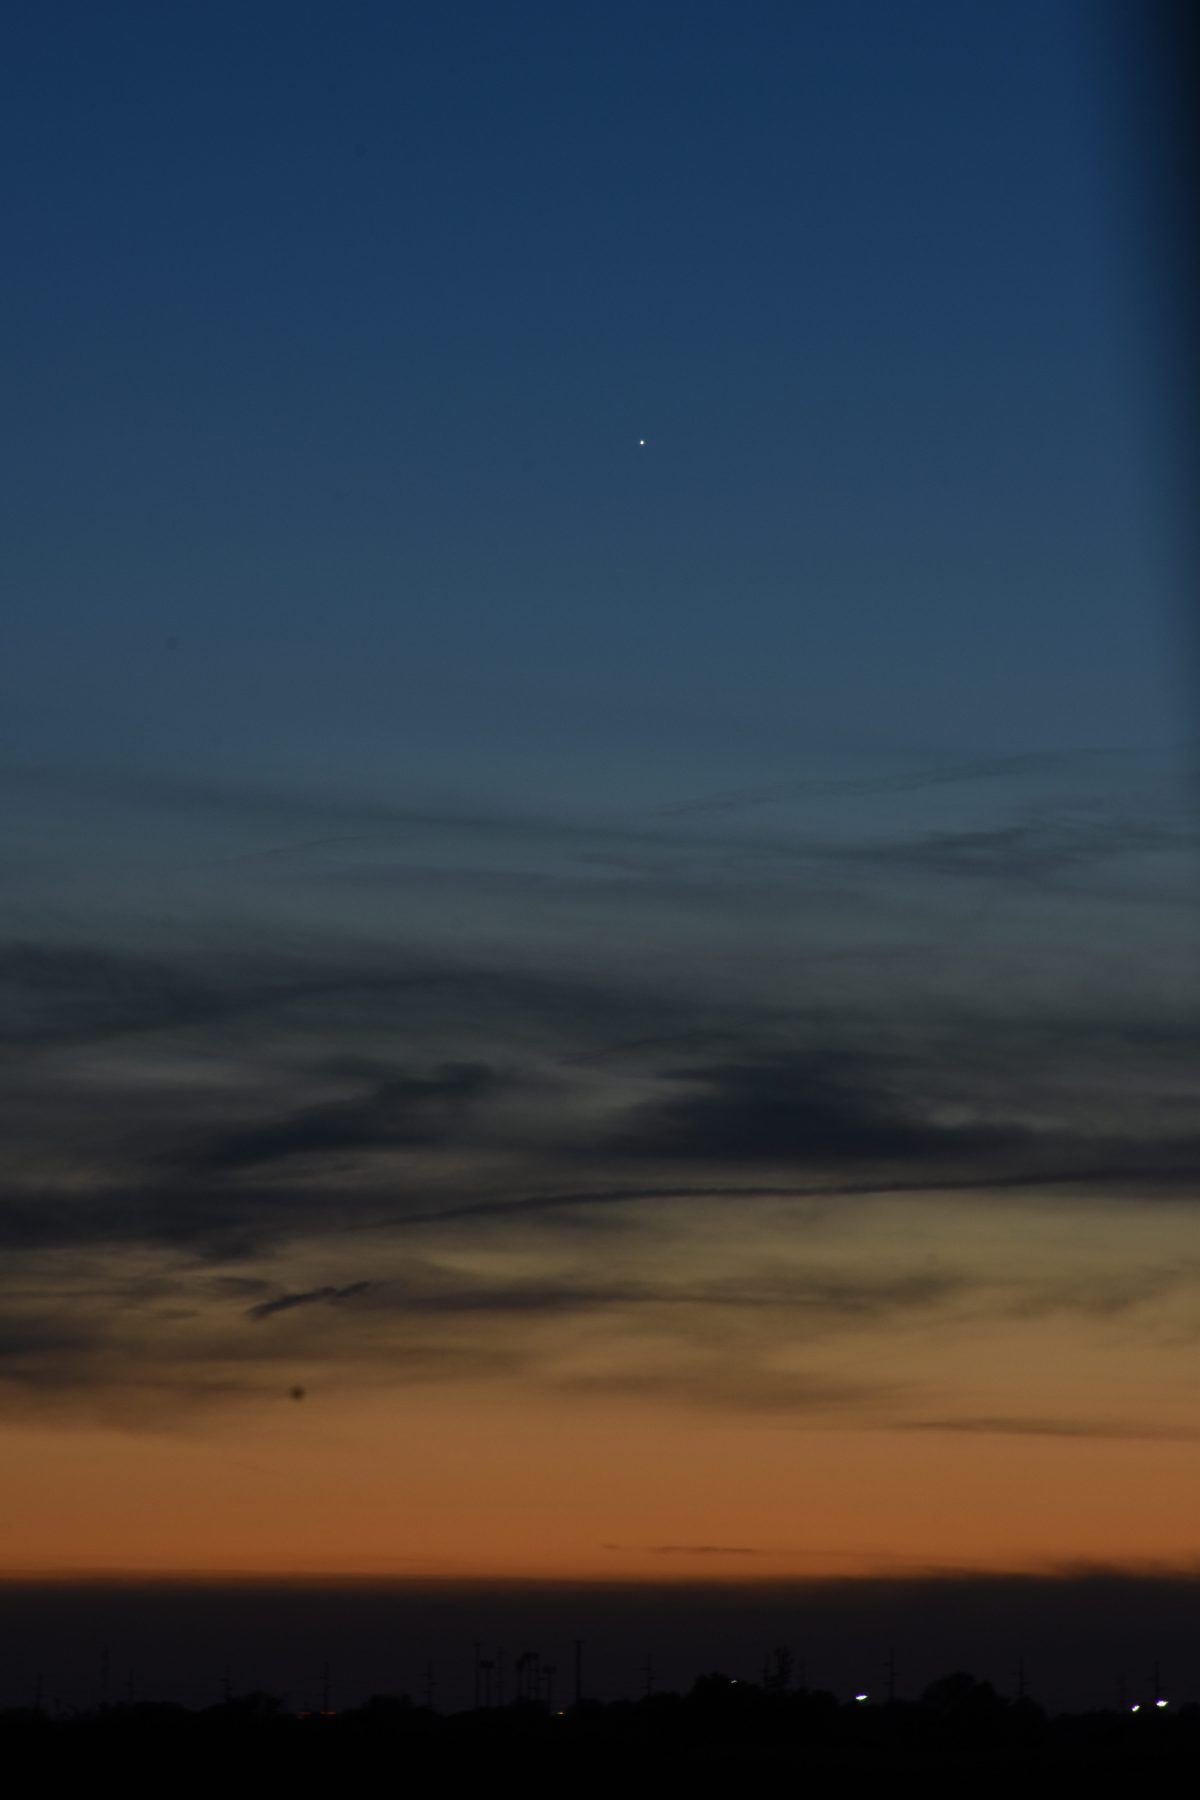 2021, May 29: Brilliant Venus shines from the west-northwest after sunset. Mercury, with some magnification, is visible to the lower right of Venus.